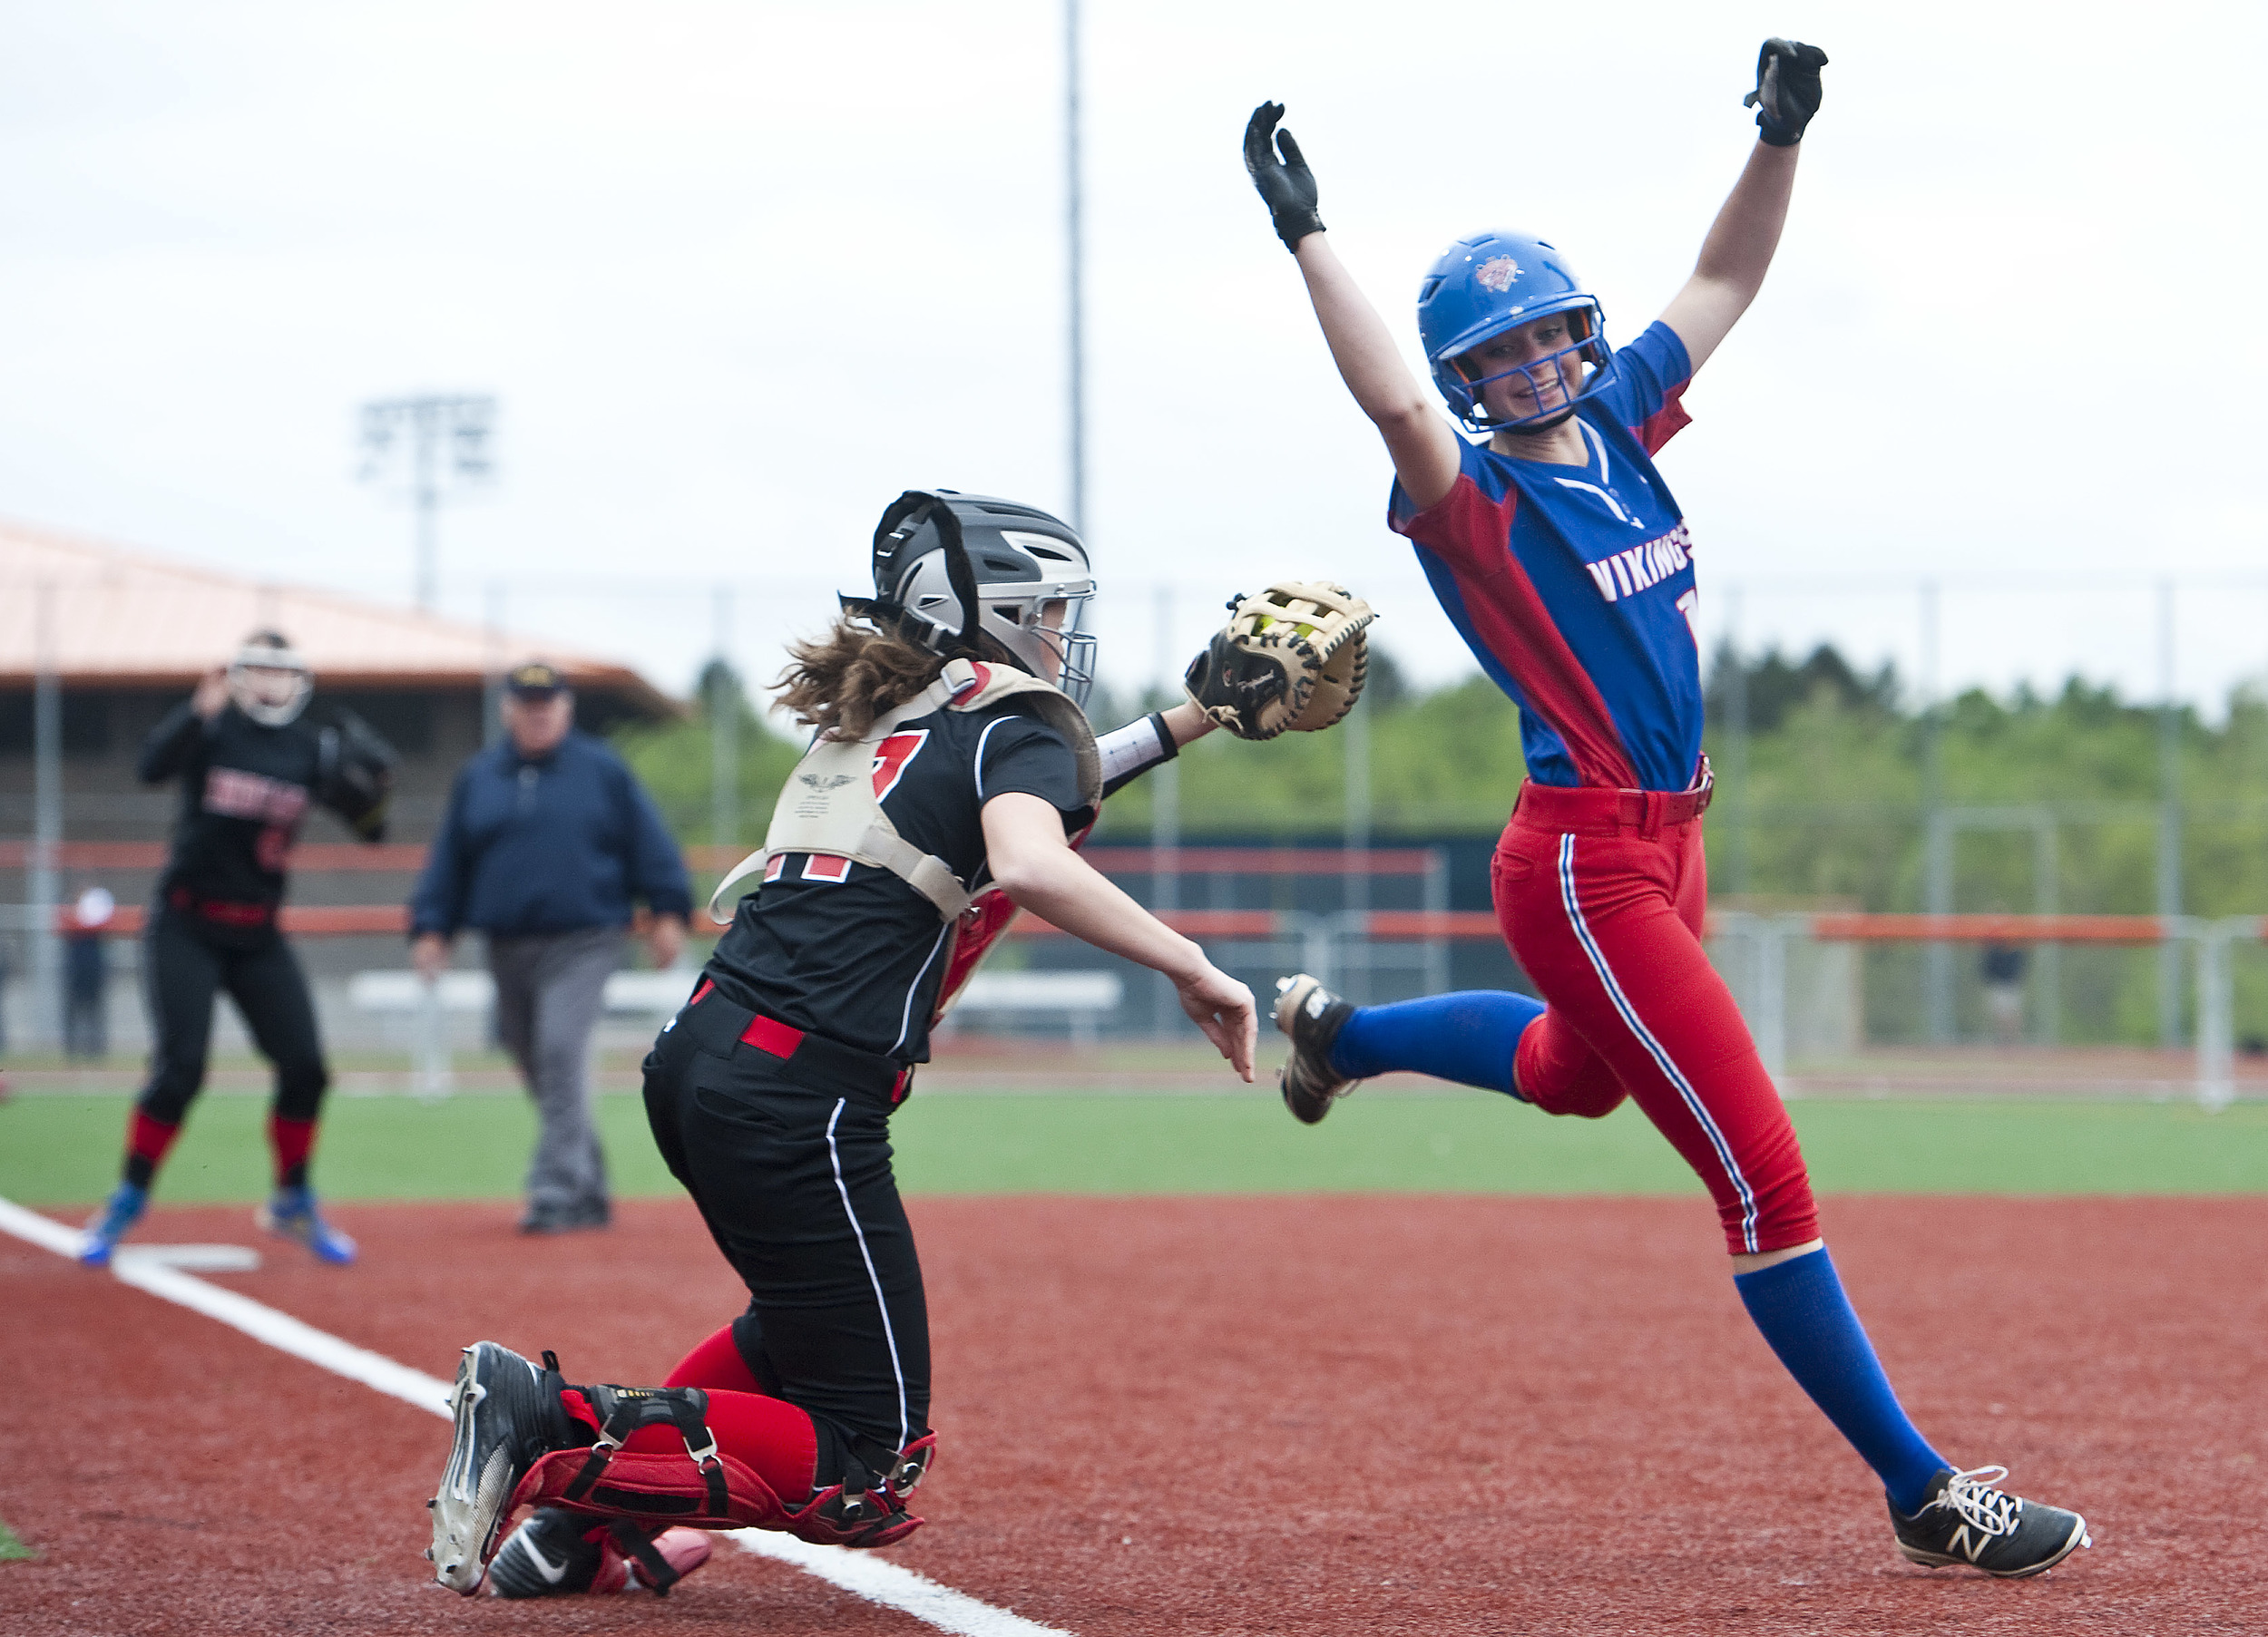 Mt. Pleasant's Christiana Czegan attempts to avoid the tag by Indiana's Logan Everett on Wednesday, May 18, 2016 at Greater Latrobe High School. Mt. Pleasant won 3-2 in eight innings.